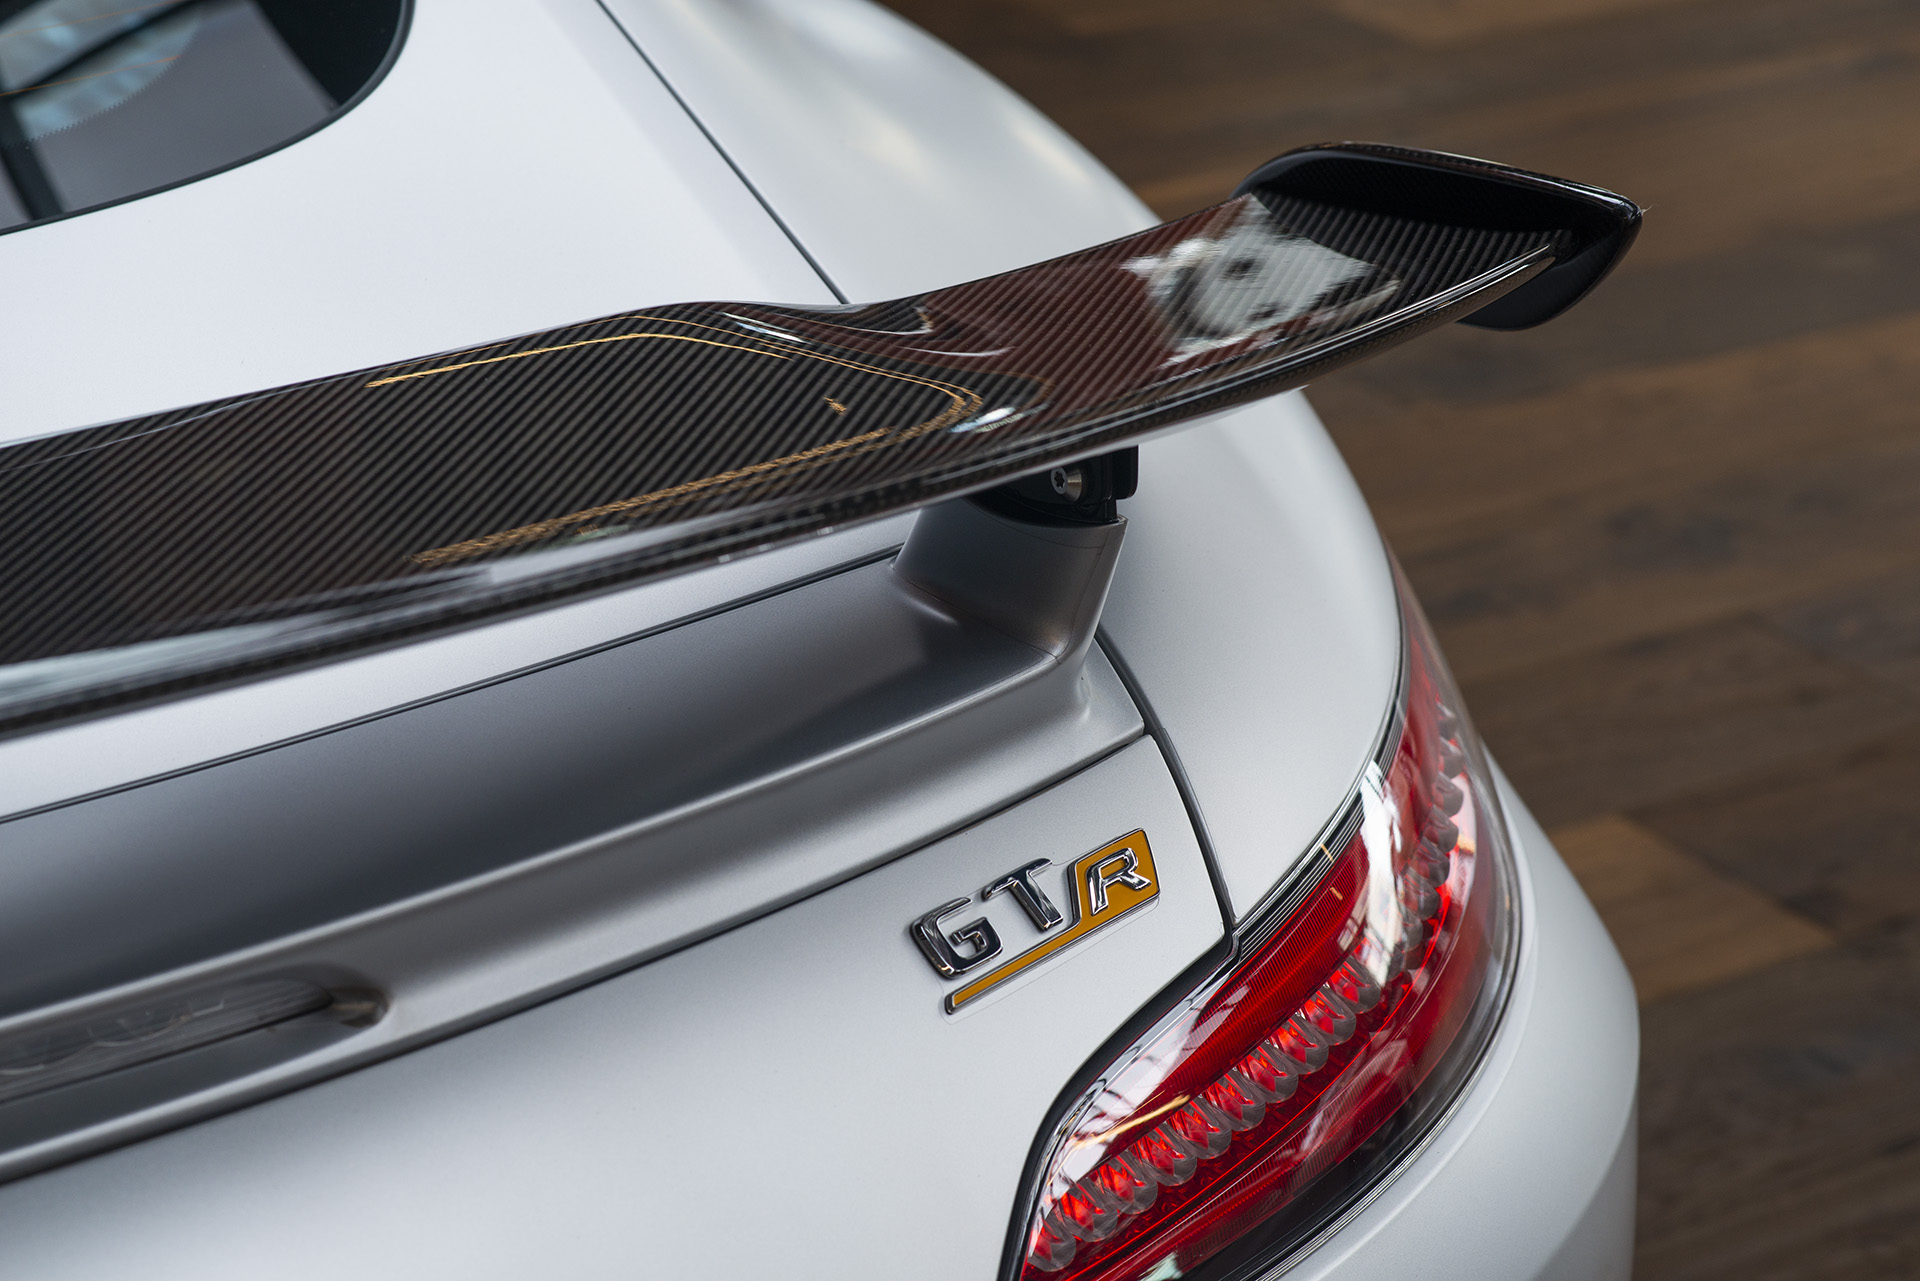 Mercedes Benz Gt Amg >> Mercedes AMG GT-R Silver (7) - Richmonds - Classic and Prestige Cars - Storage and Sales ...